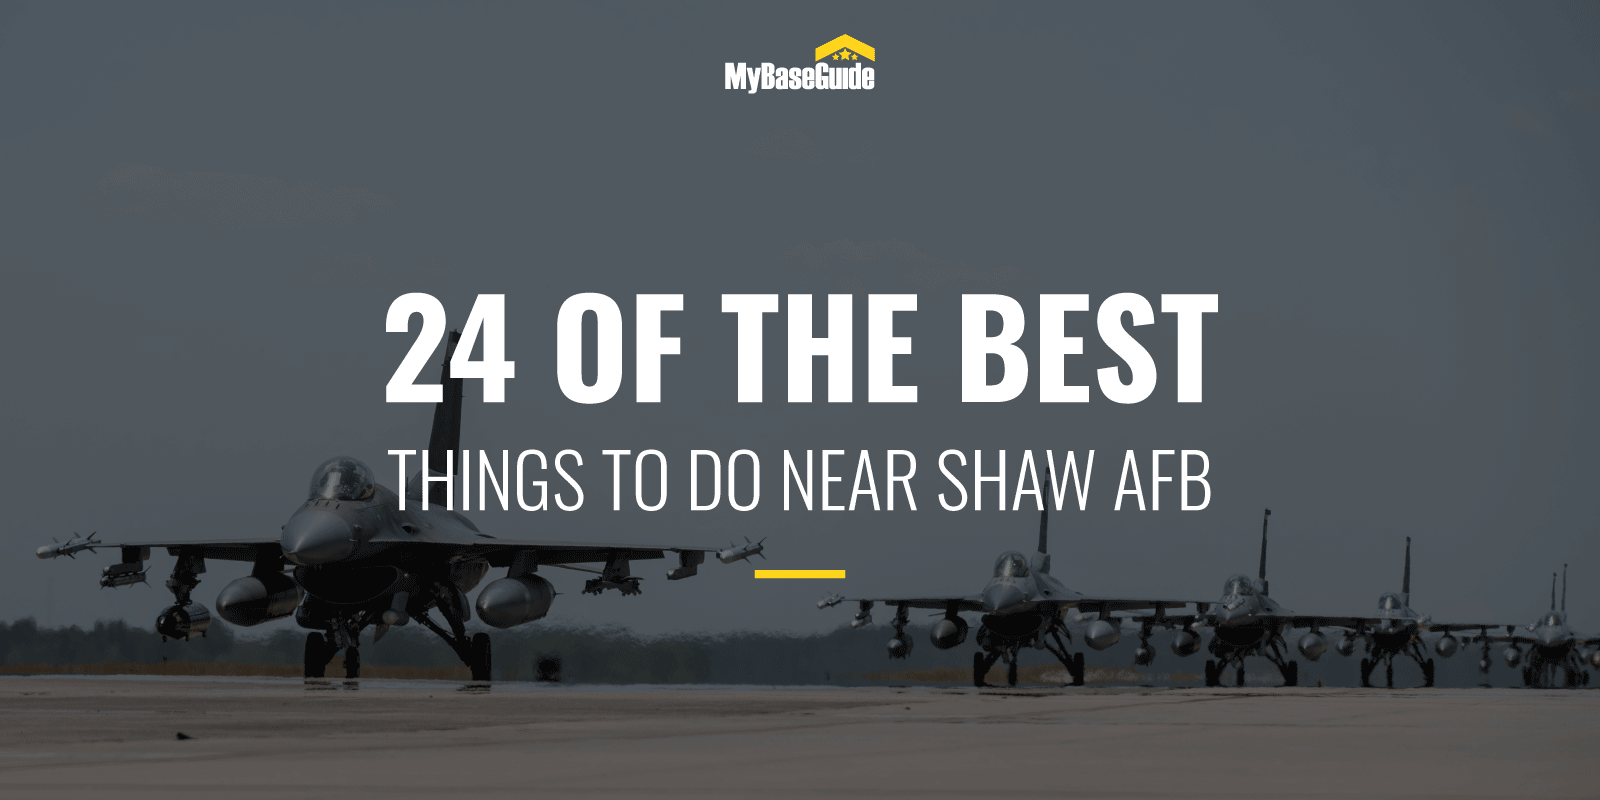 24 Of the Best Things to Do Near Shaw AFB